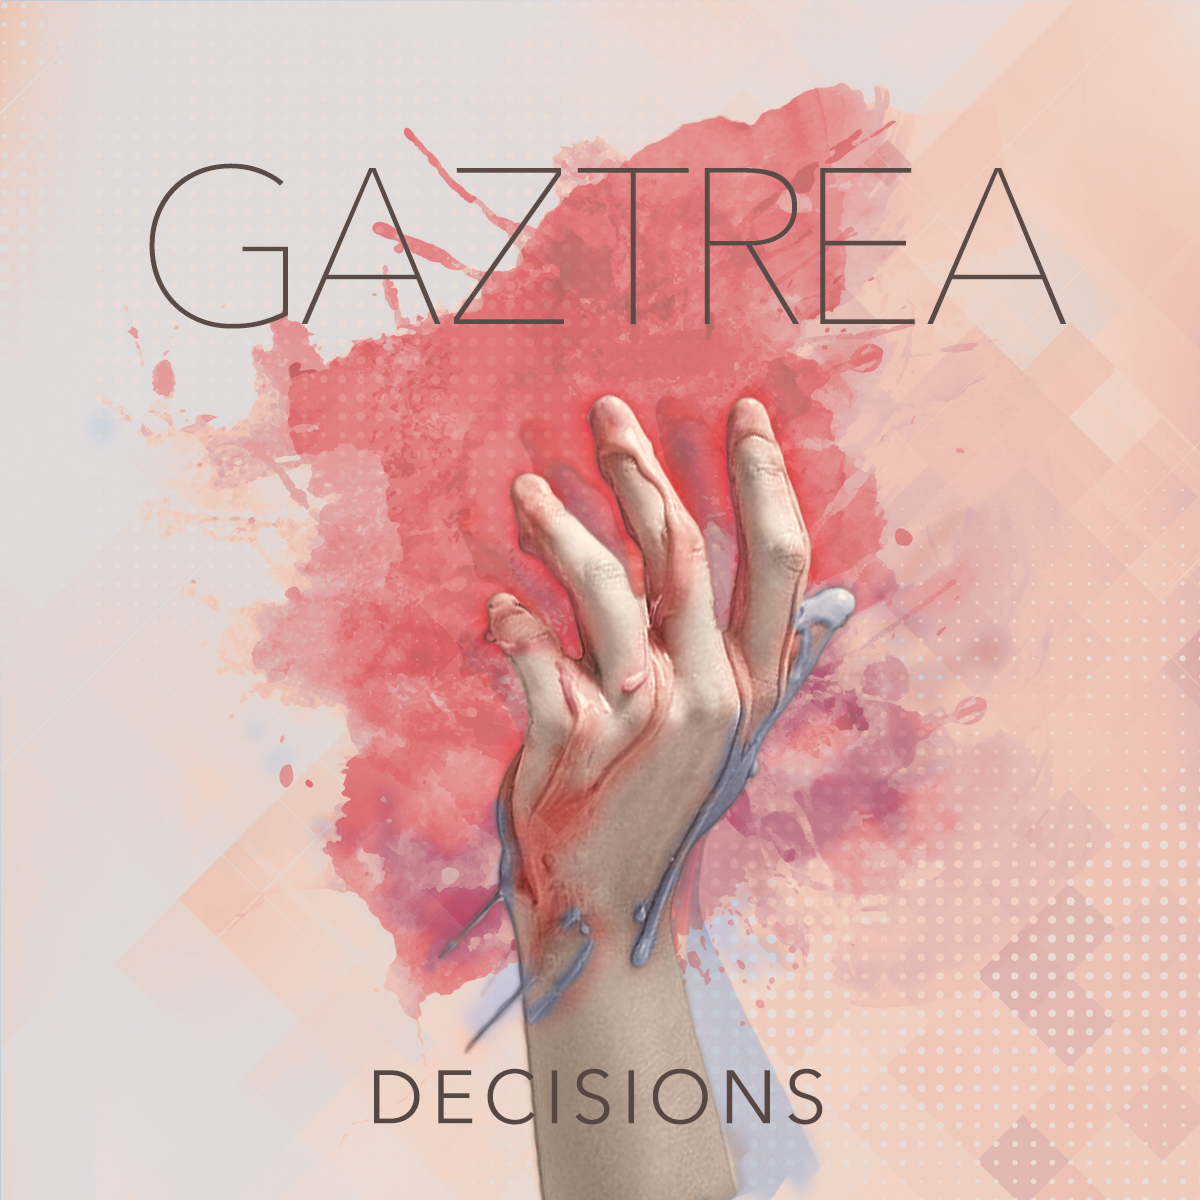 DECISIONS - EP